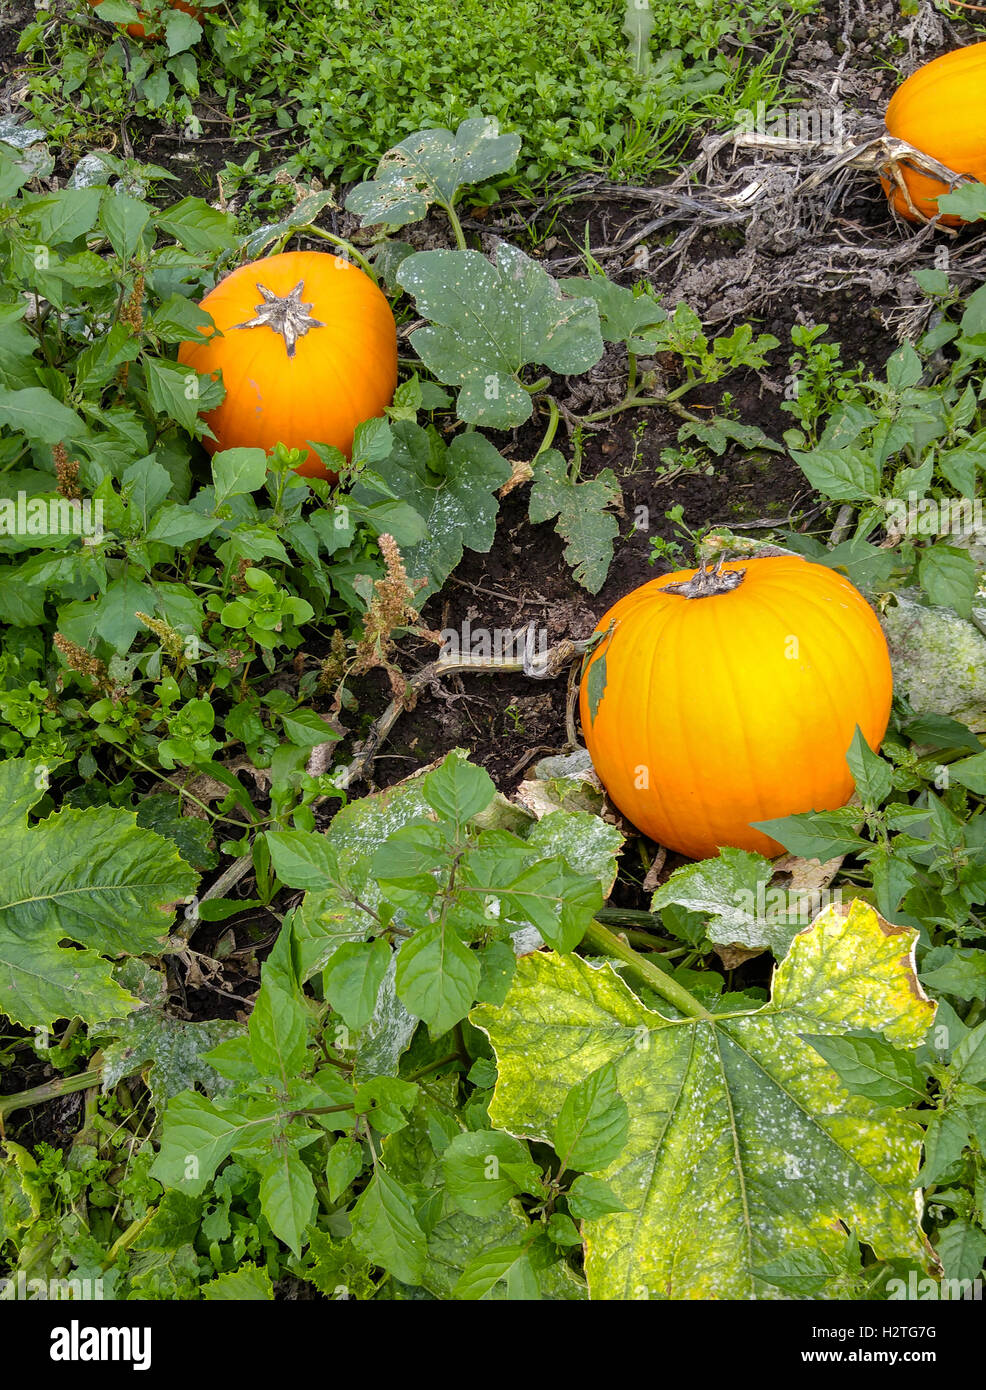 Pumpkins growing in the pumpkin patch. - Stock Image